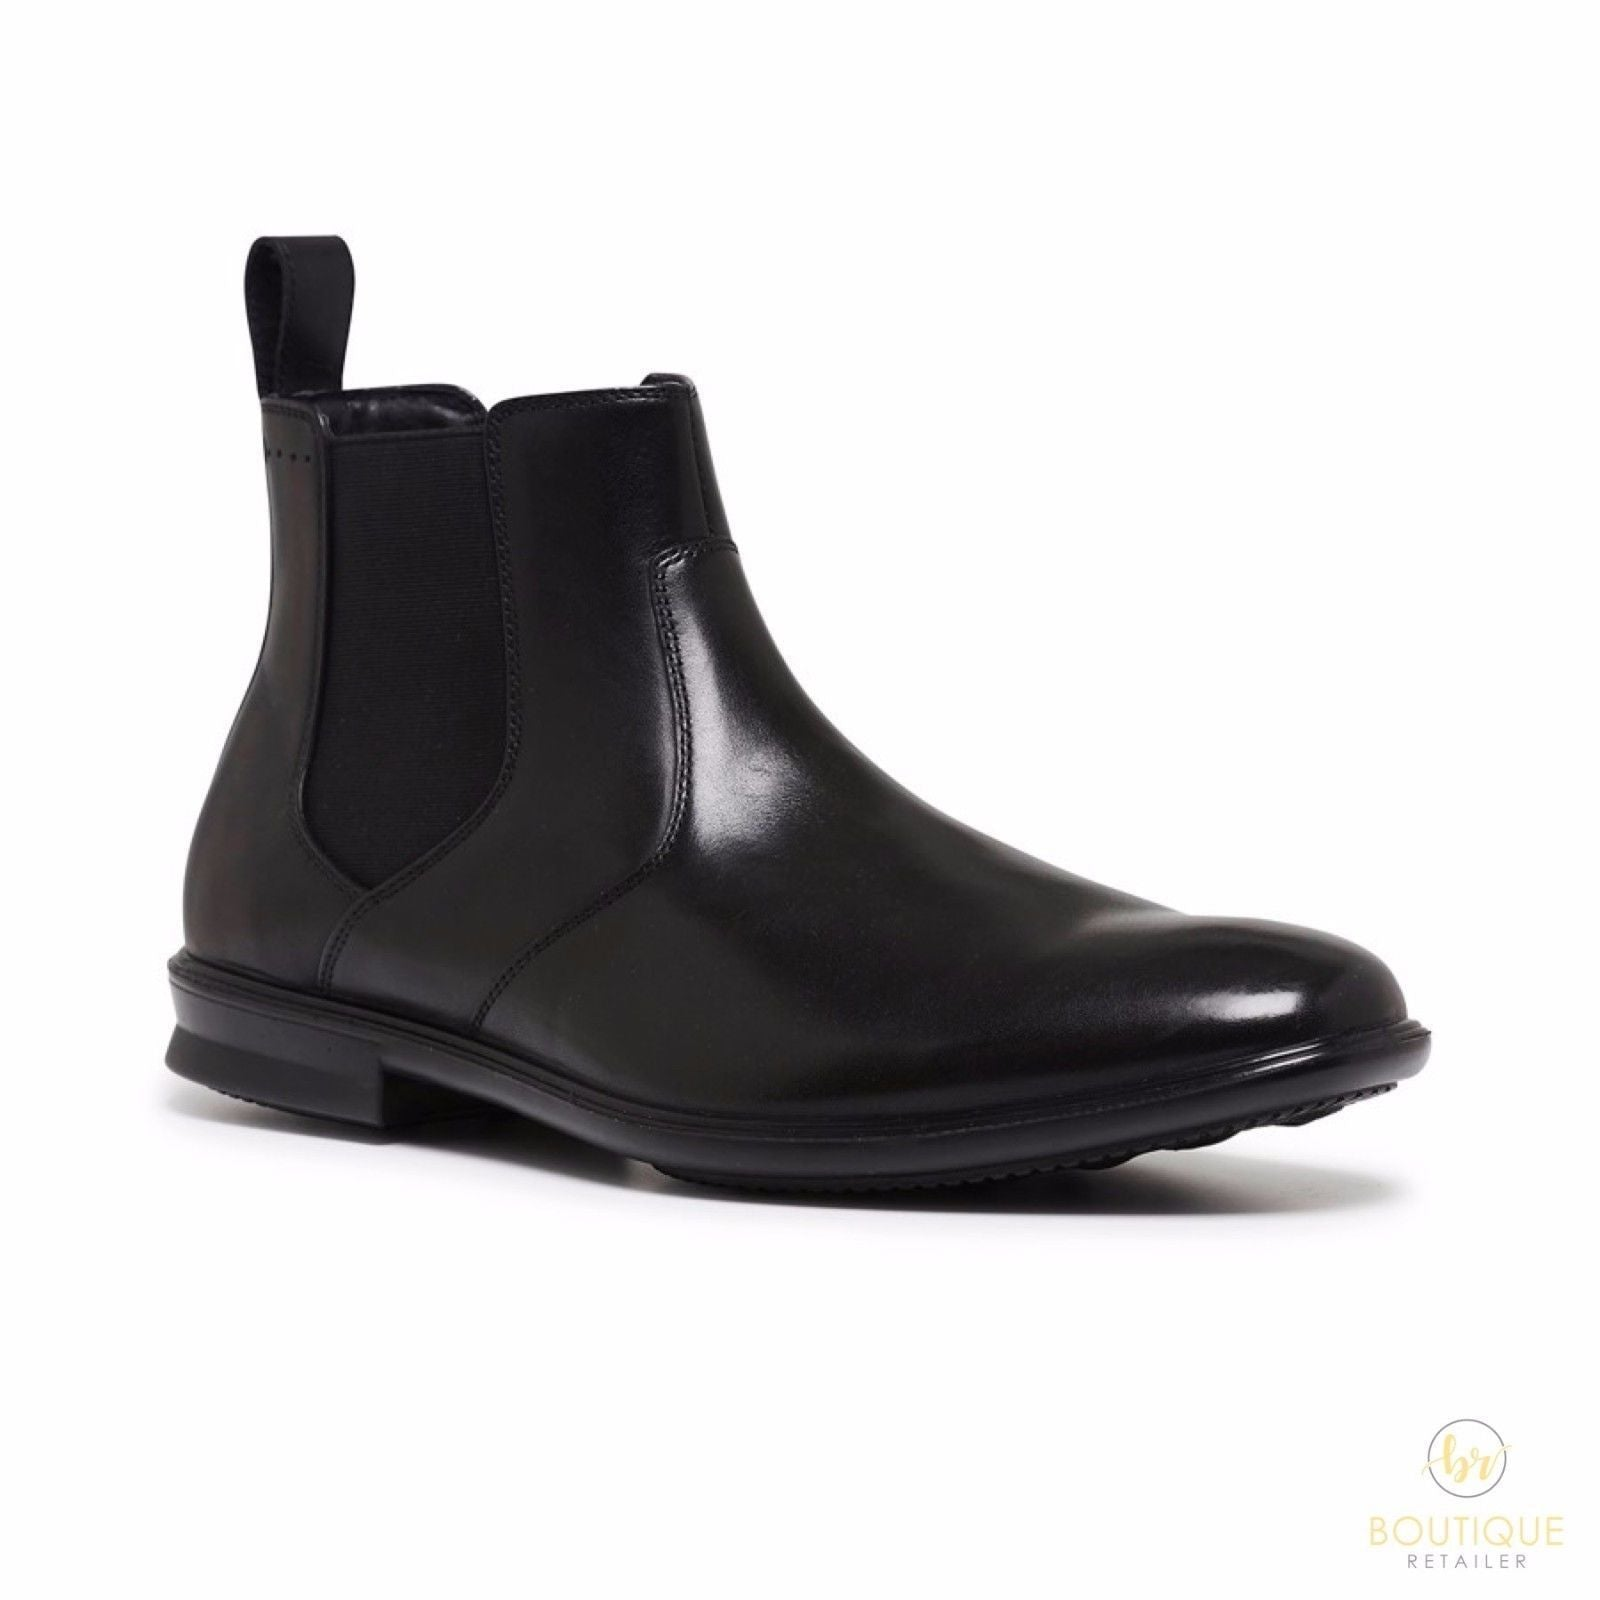 HUSH PUPPIES Mens Carter Leather Boots Shoes Slip On Extra Wide Waterproof Chelsea